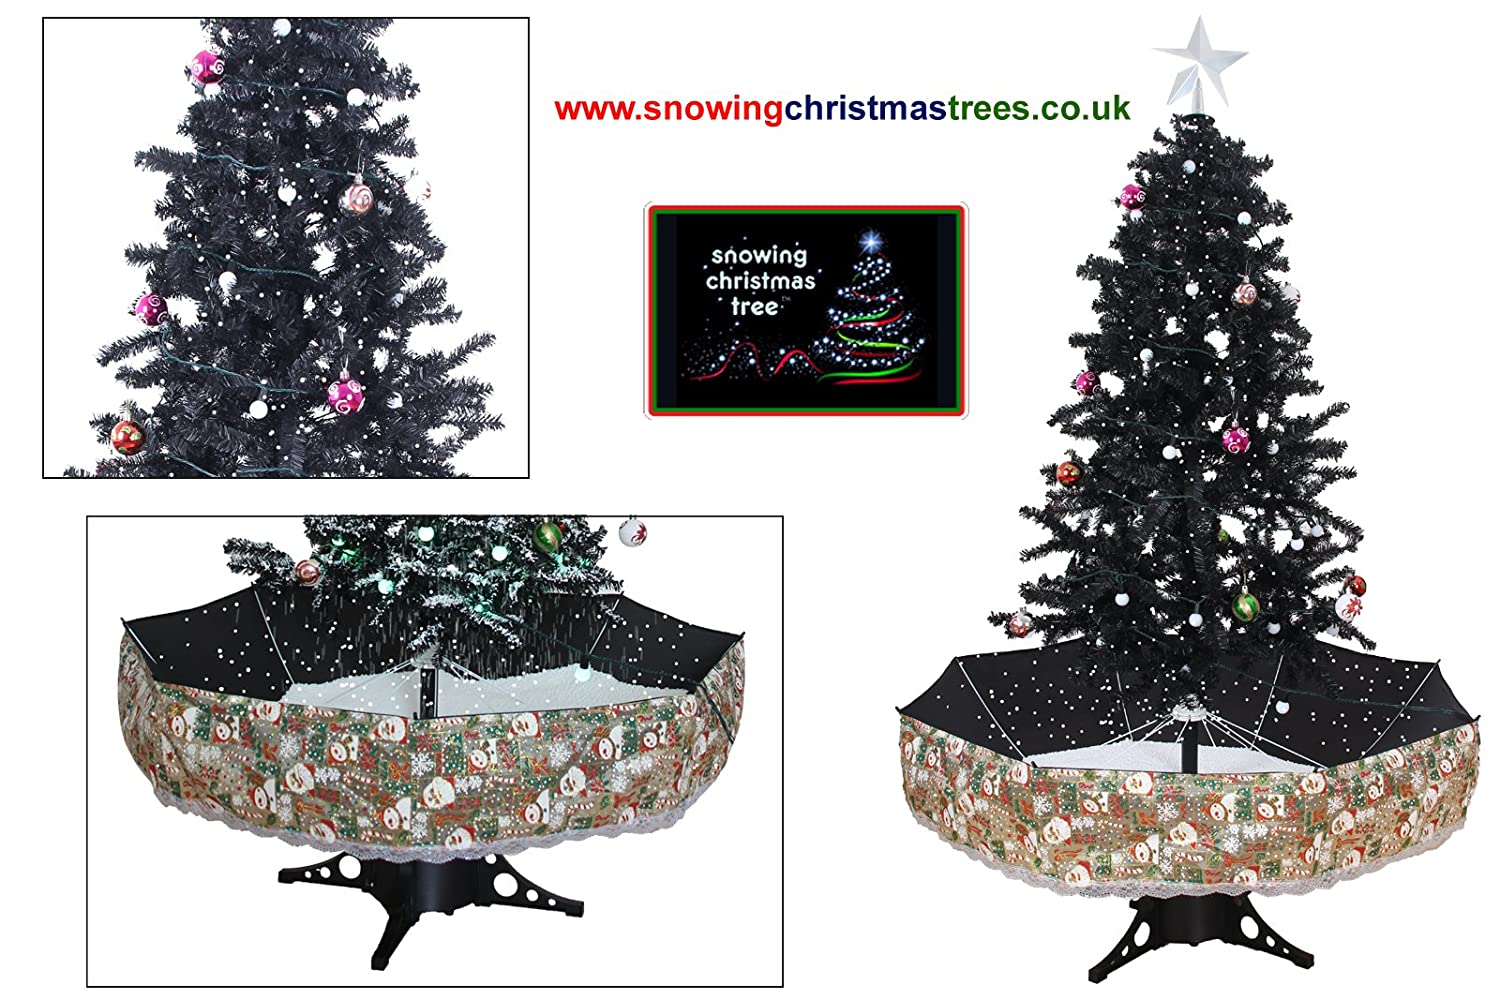 Snowing christmas decoration let it snow - Snowing Christmas Tree With Black Umbrella Base 2016 5 New Features Amazon Co Uk Lighting